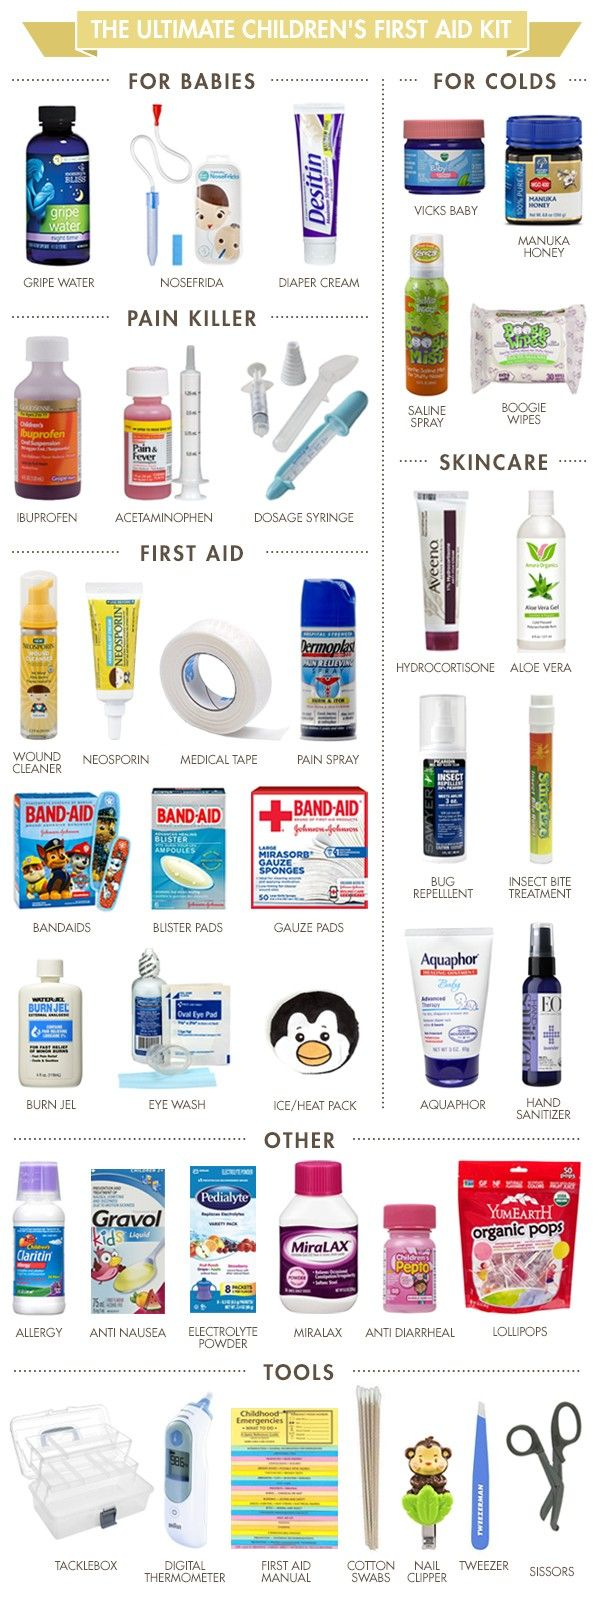 Free Worksheet First Aid Worksheets For Kids 17 best ideas about first aid kid on pinterest kits the ultimate childrens kit hellobee